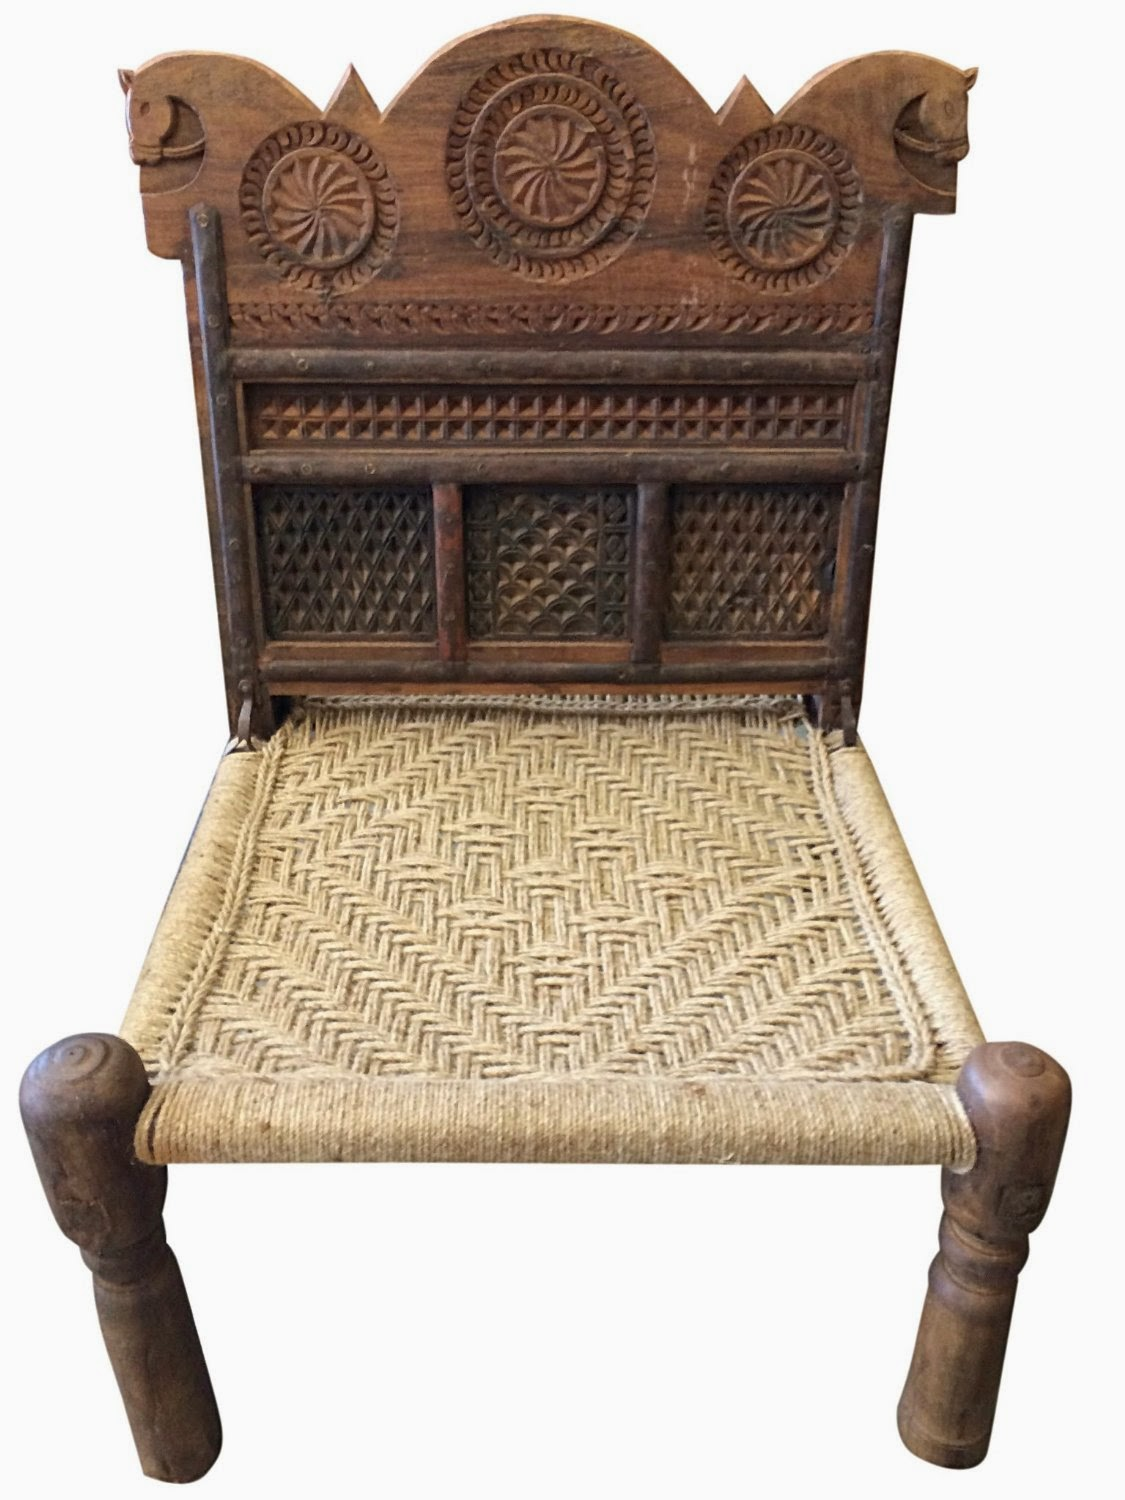 Indian wooden furnitures indian antique furniture furniture vintage rustic indian jaipur Old wooden furniture